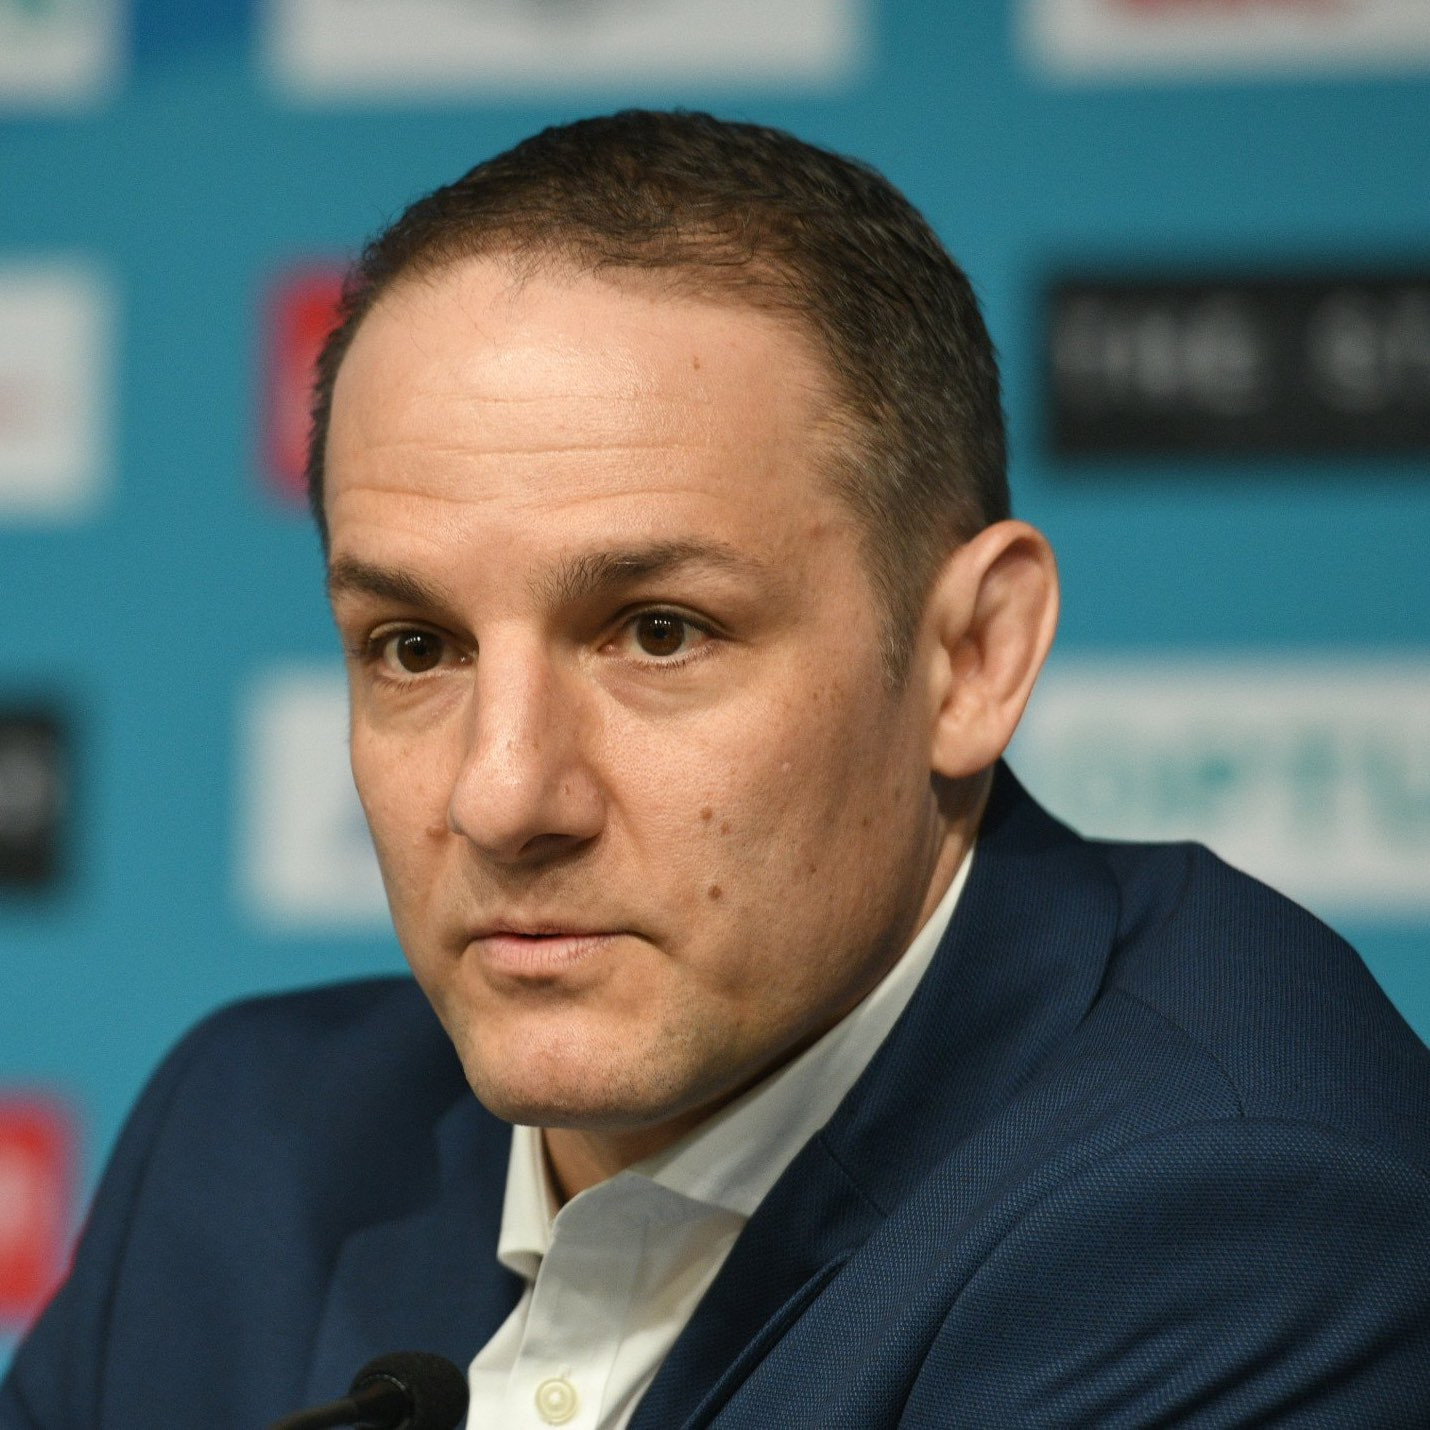 David Grevemberg: SportAccord 2019 is the next step in the transformational legacy of the Gold Coast 2018 Commonwealth Games